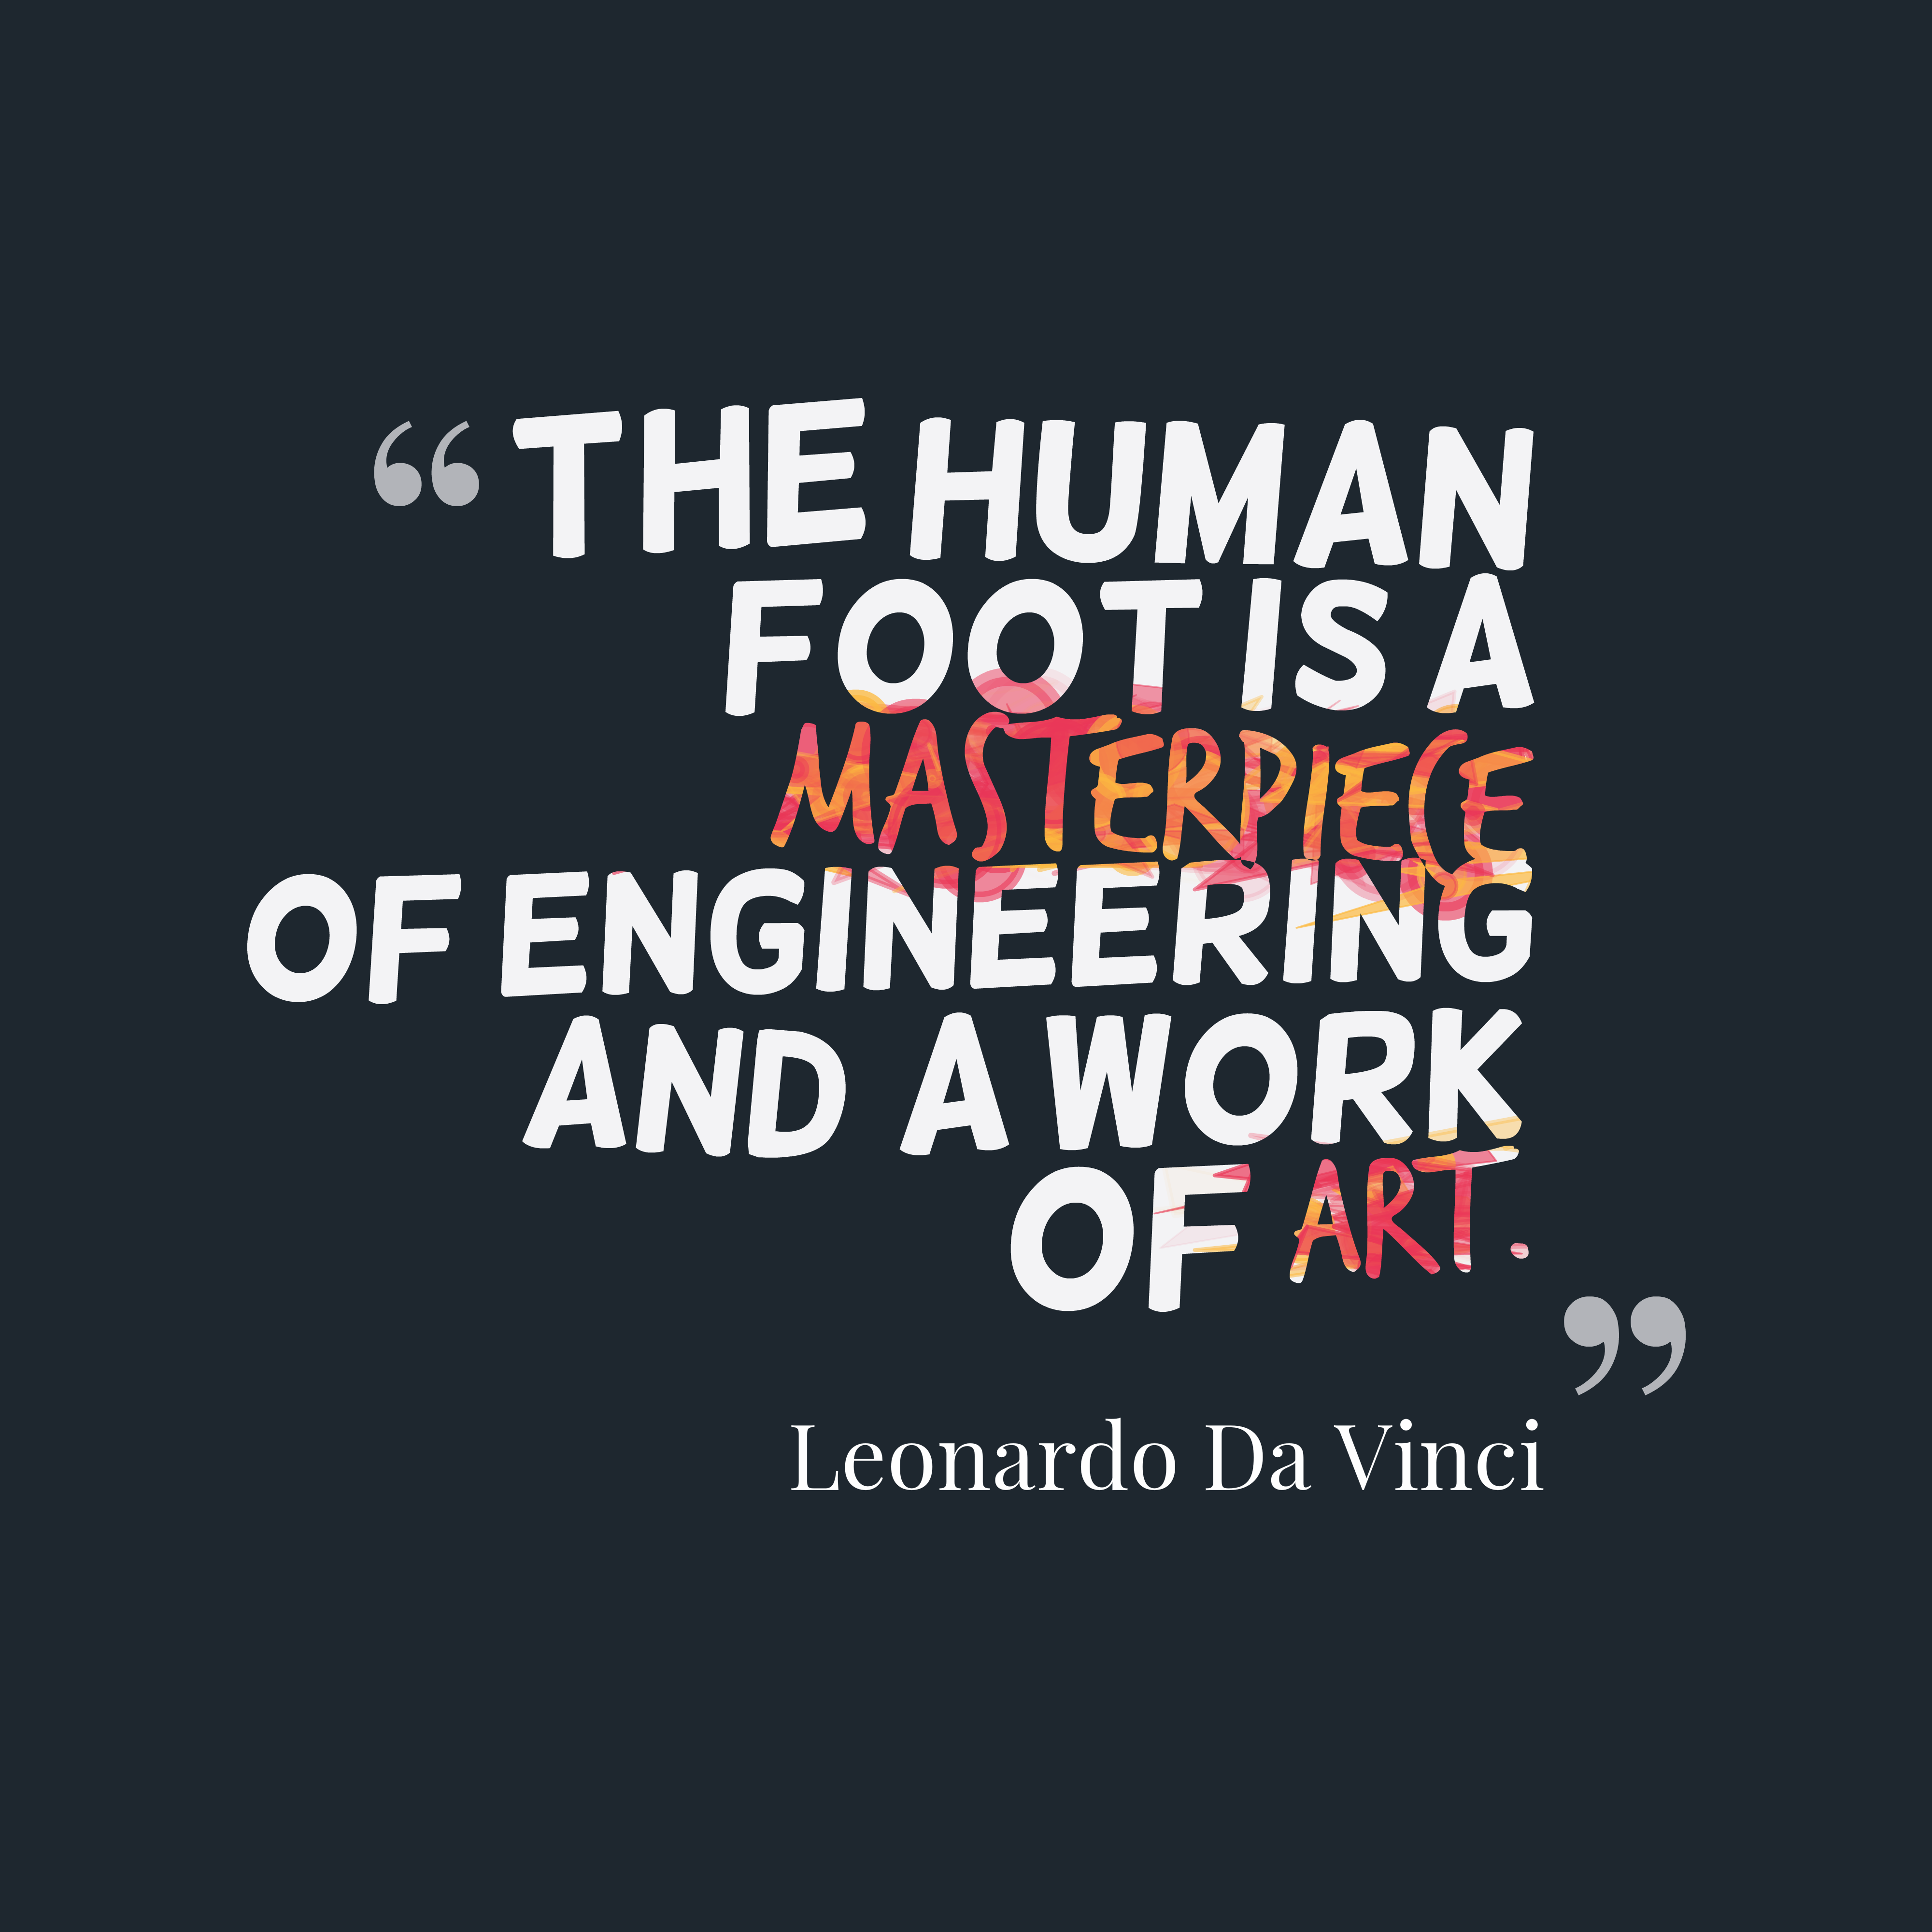 Get High Resolution Using Text From Leonardo Da Vinci Quote About Foot Quotescover Com